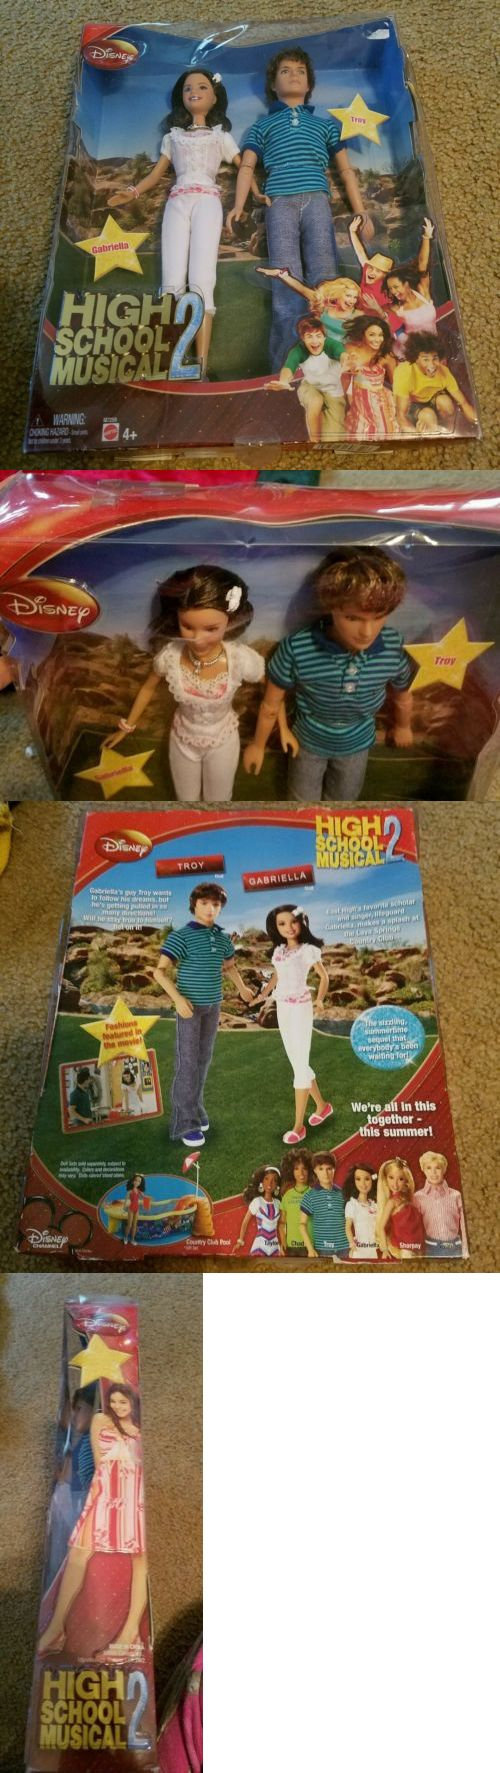 High School Musical 158764: 2007 *New* Nib High School Musical 2 Together At Last Gabriella And Troy 10 Doll -> BUY IT NOW ONLY: $37.99 on eBay!